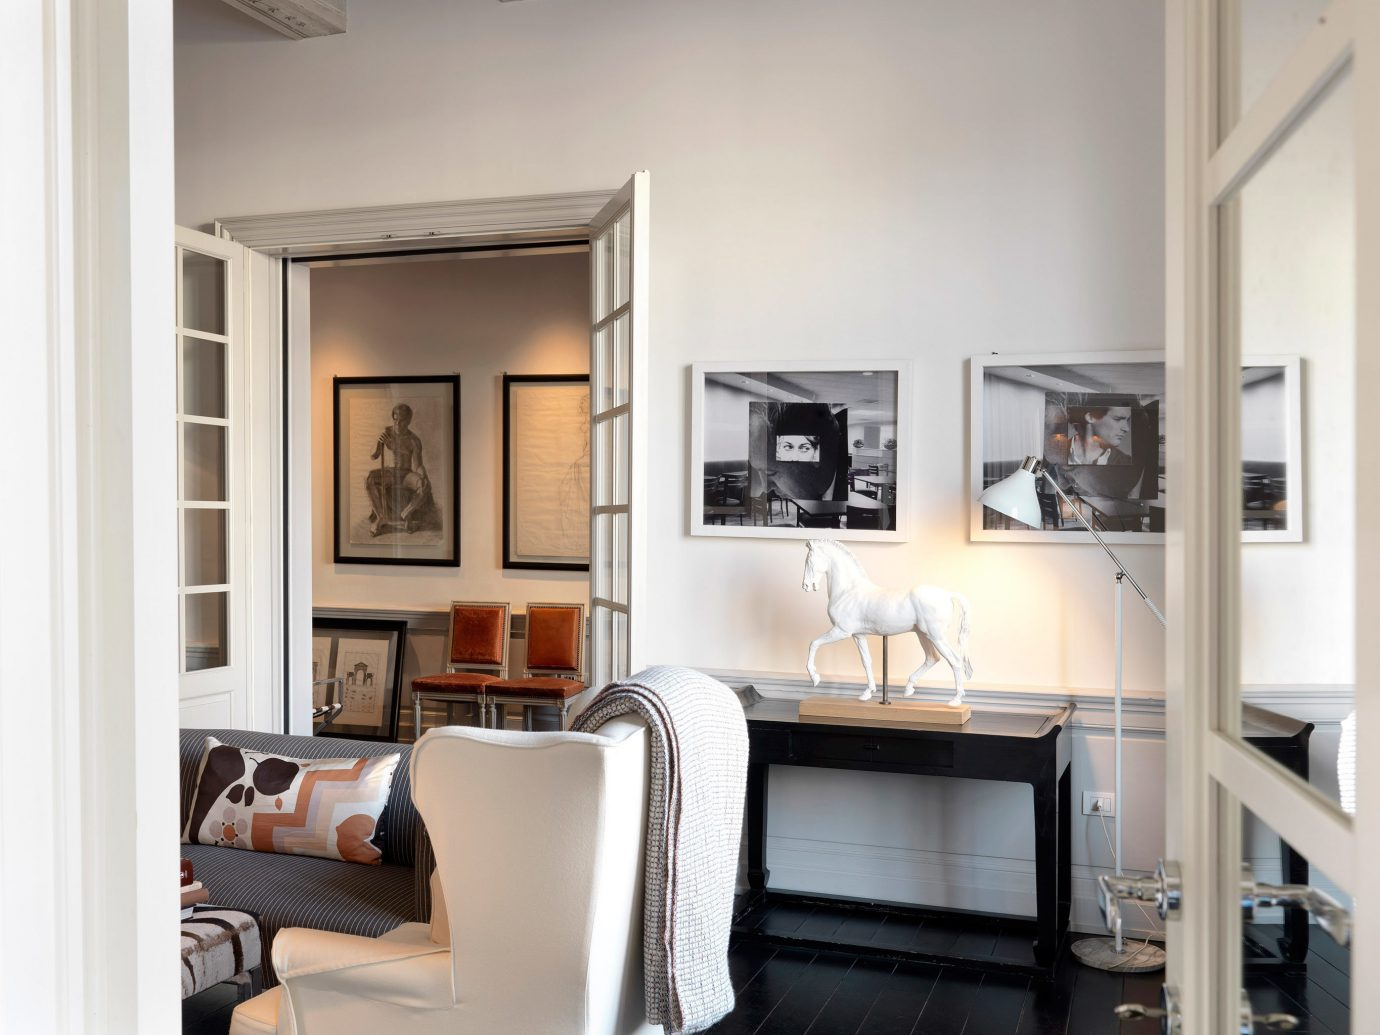 Boutique City Elegant Florence Hotels Italy Lounge Romance Romantic indoor floor wall room Living living room property home interior design dining room cabinetry furniture condominium Design real estate loft apartment leather